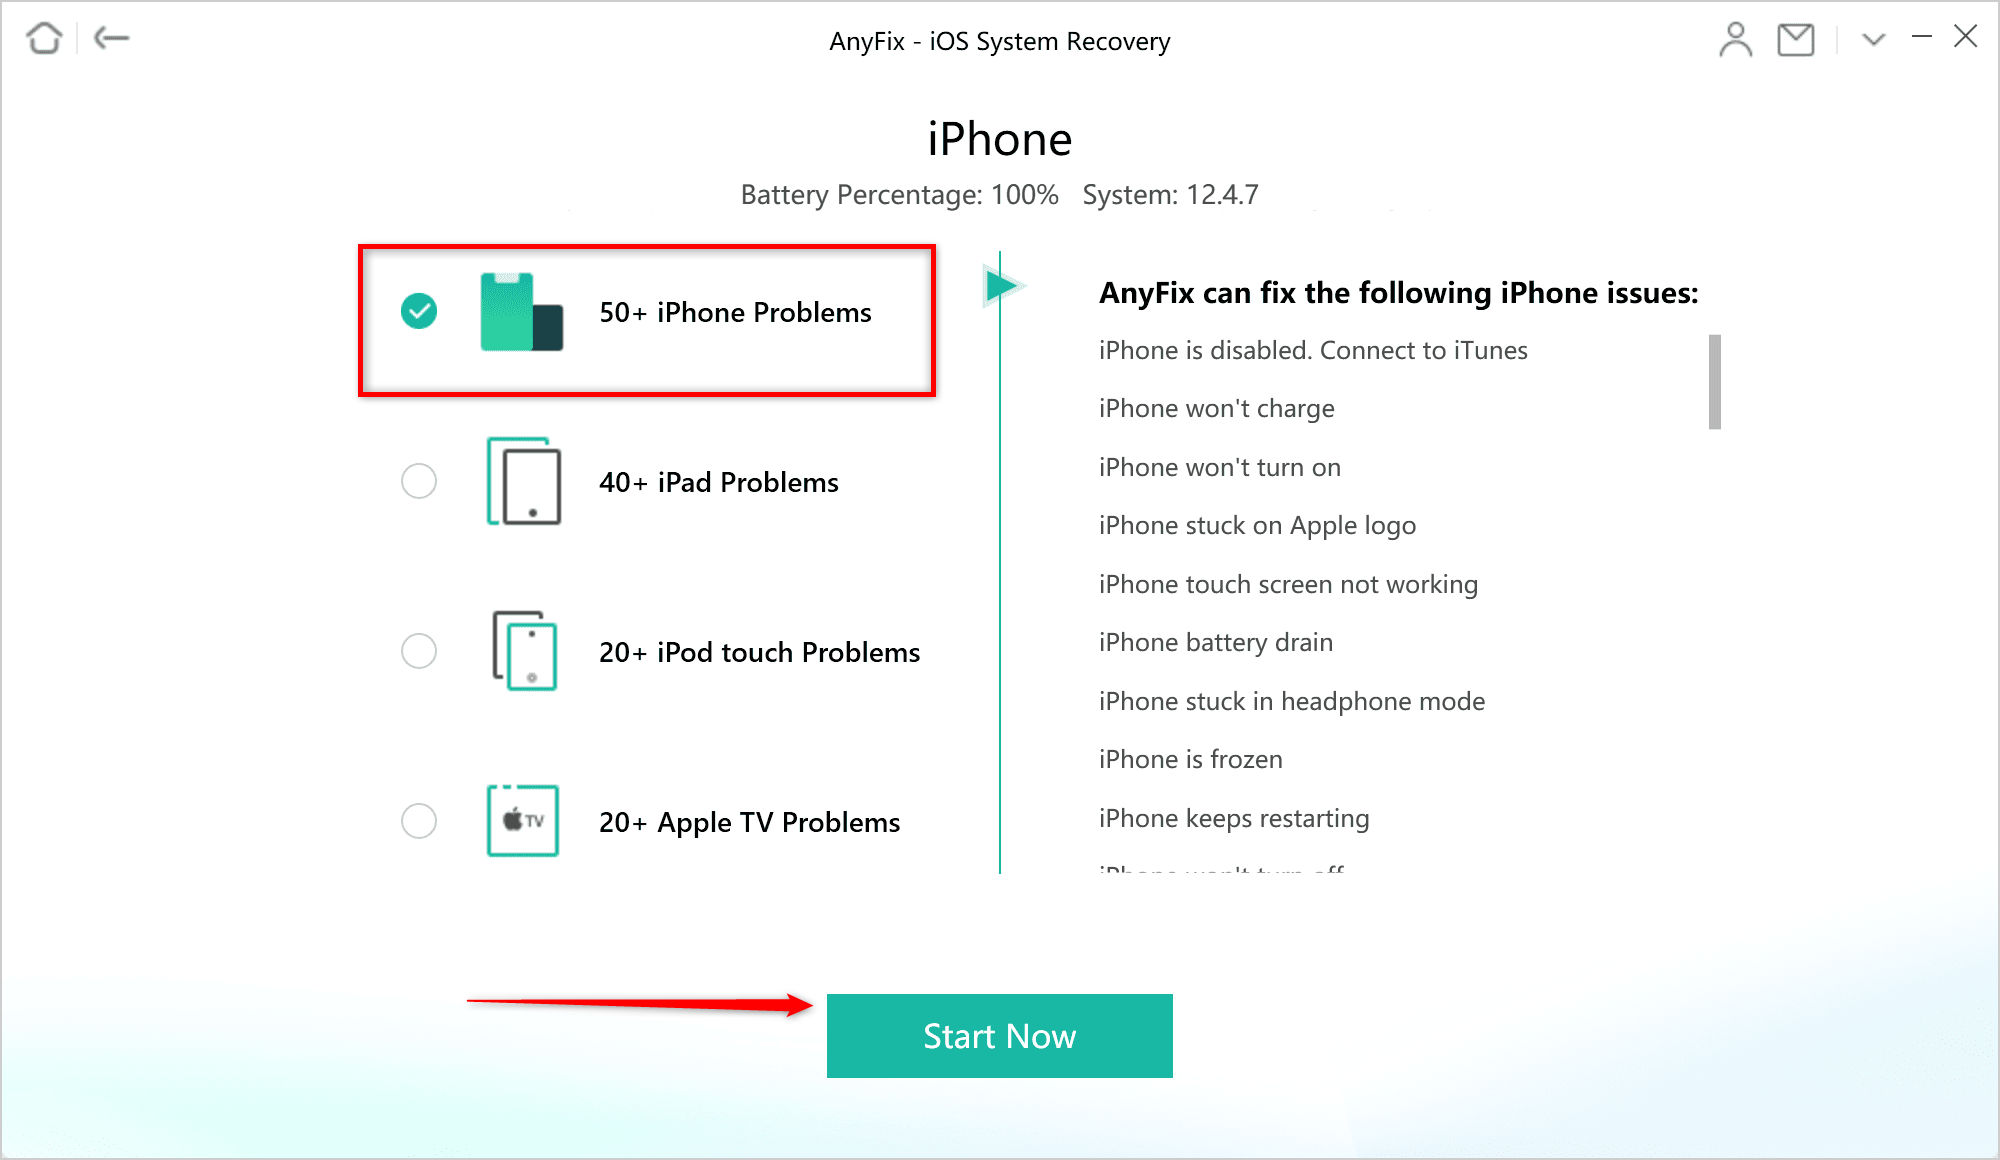 How to Fix iPhone Issues via AnyFix